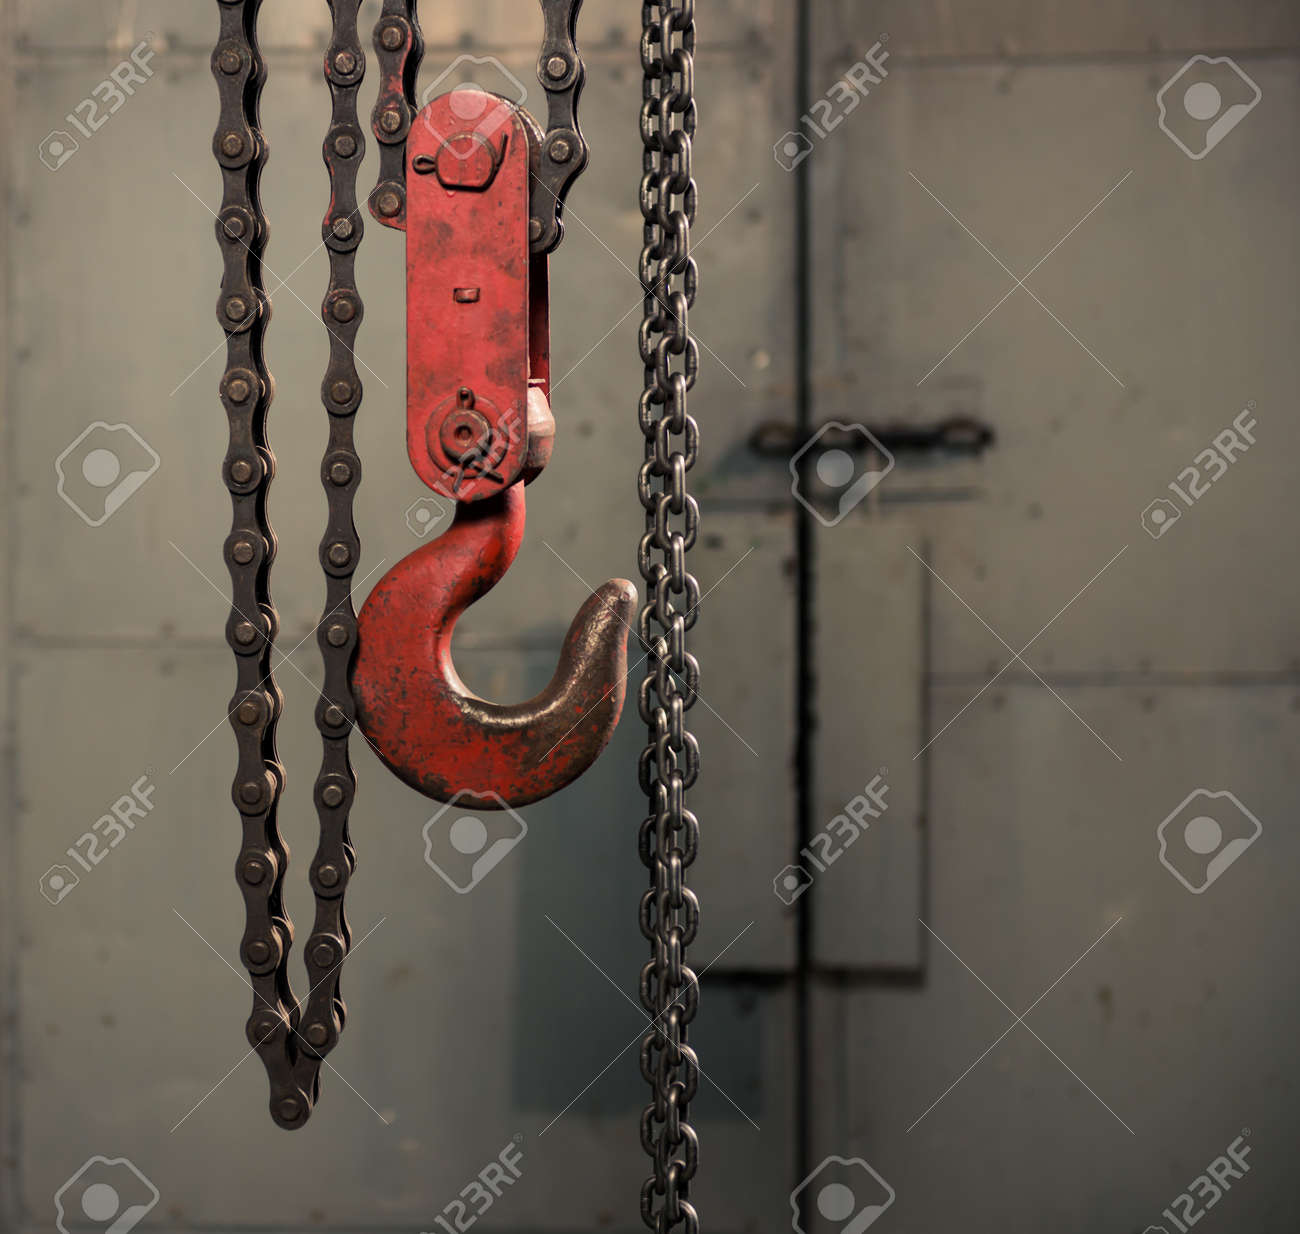 handle metallic chain with red hook - 116678587